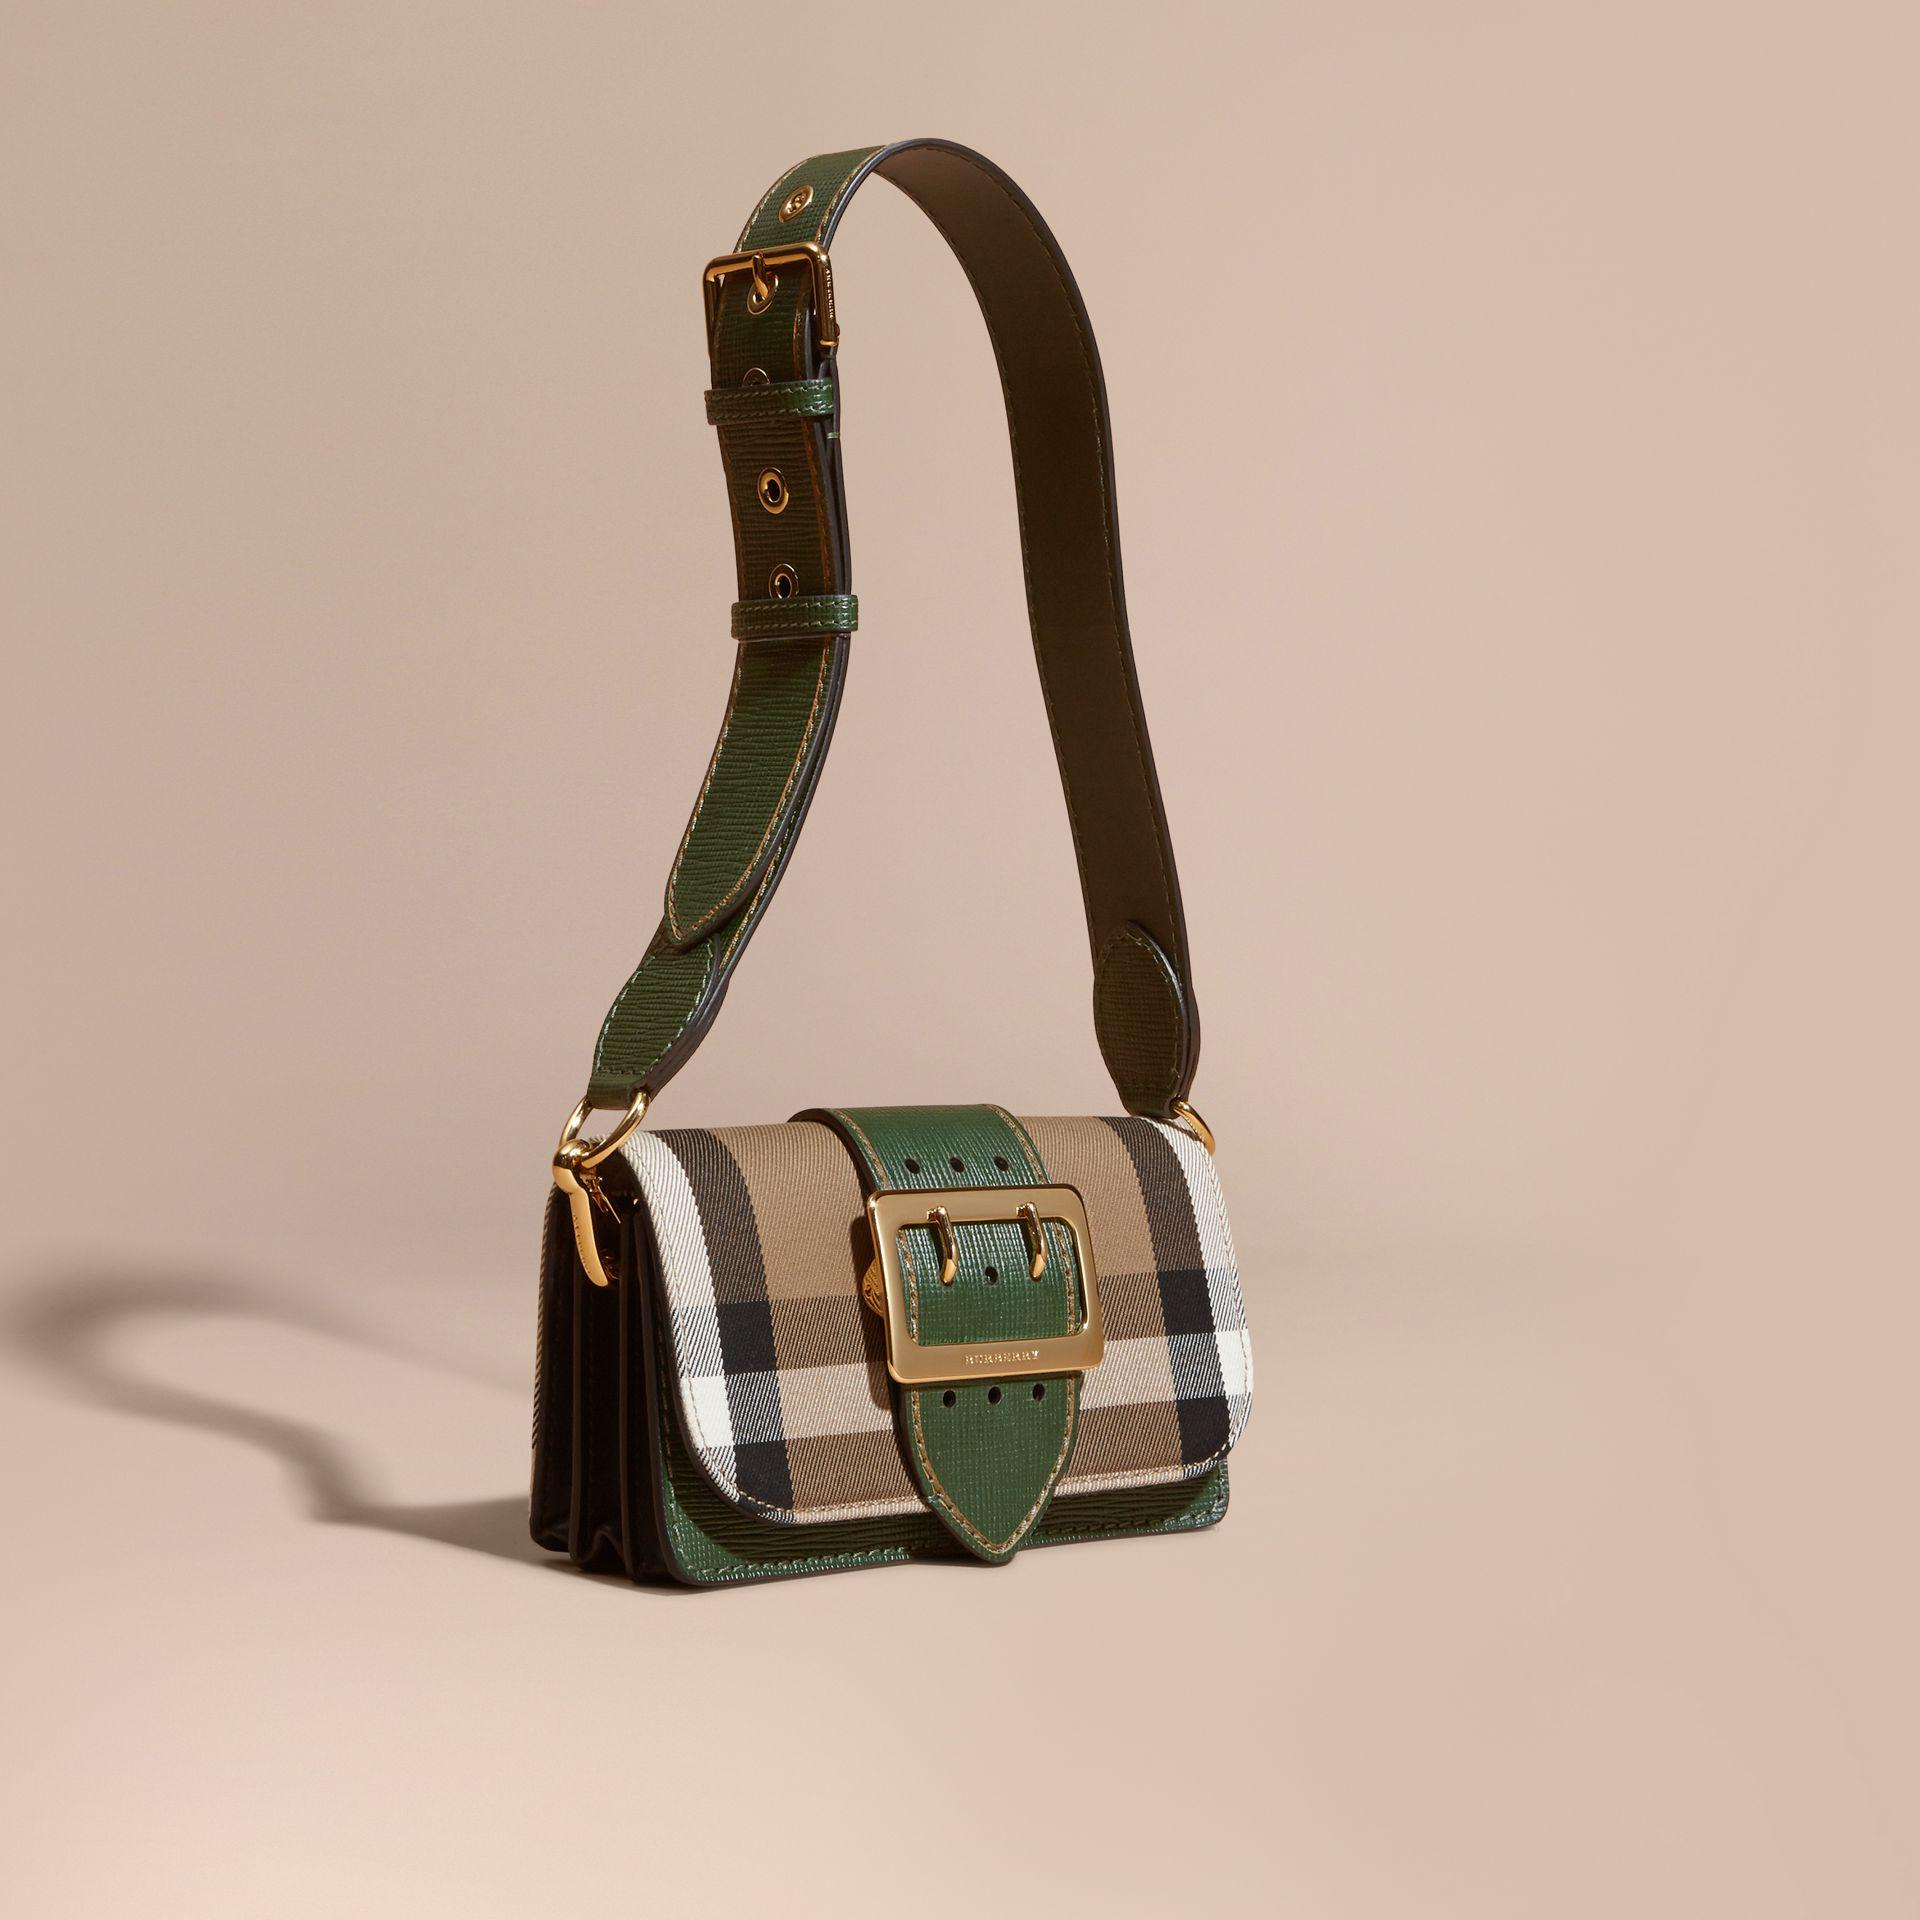 Lyst - Burberry Small Buckle House Check And Leather Shoulder Bag in ... 36a0cd2e80